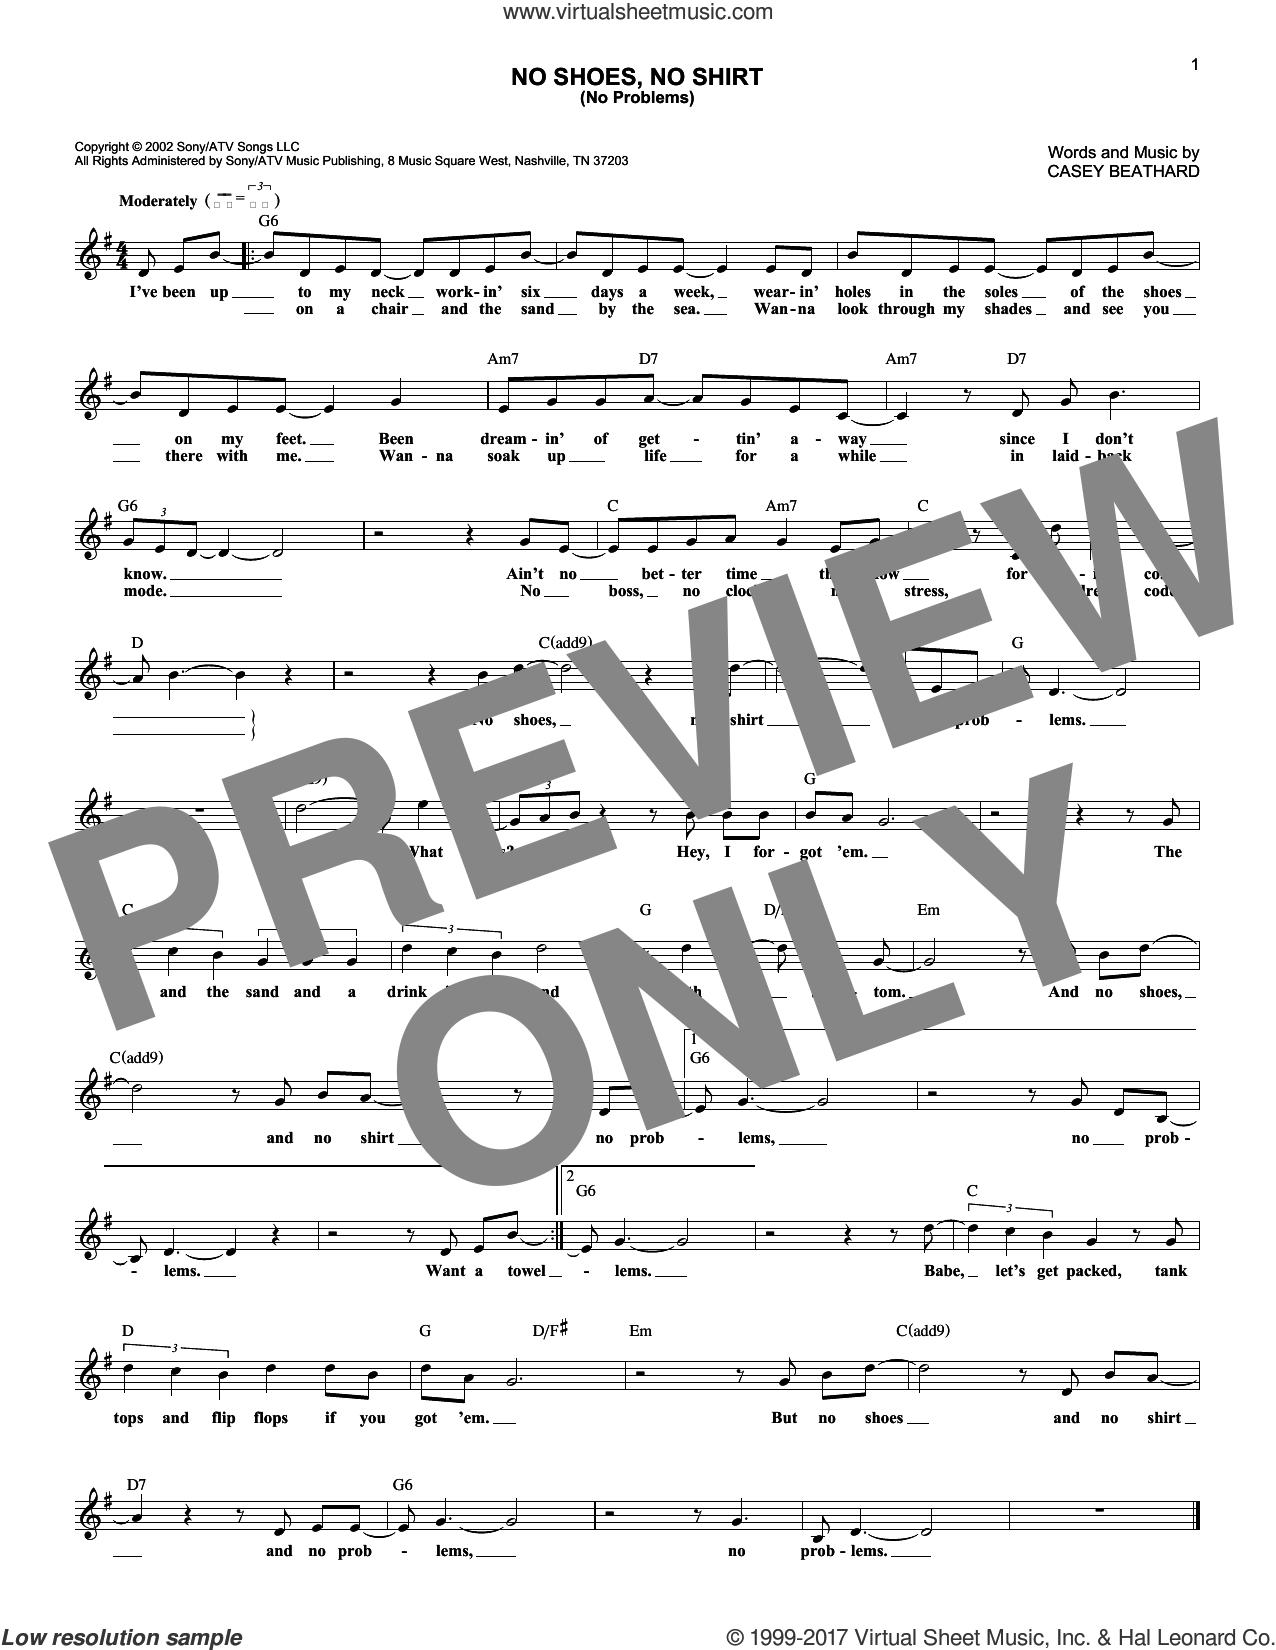 No Shoes No Shirt (No Problems) sheet music for voice and other instruments (fake book) by Kenny Chesney and Casey Beathard, intermediate skill level